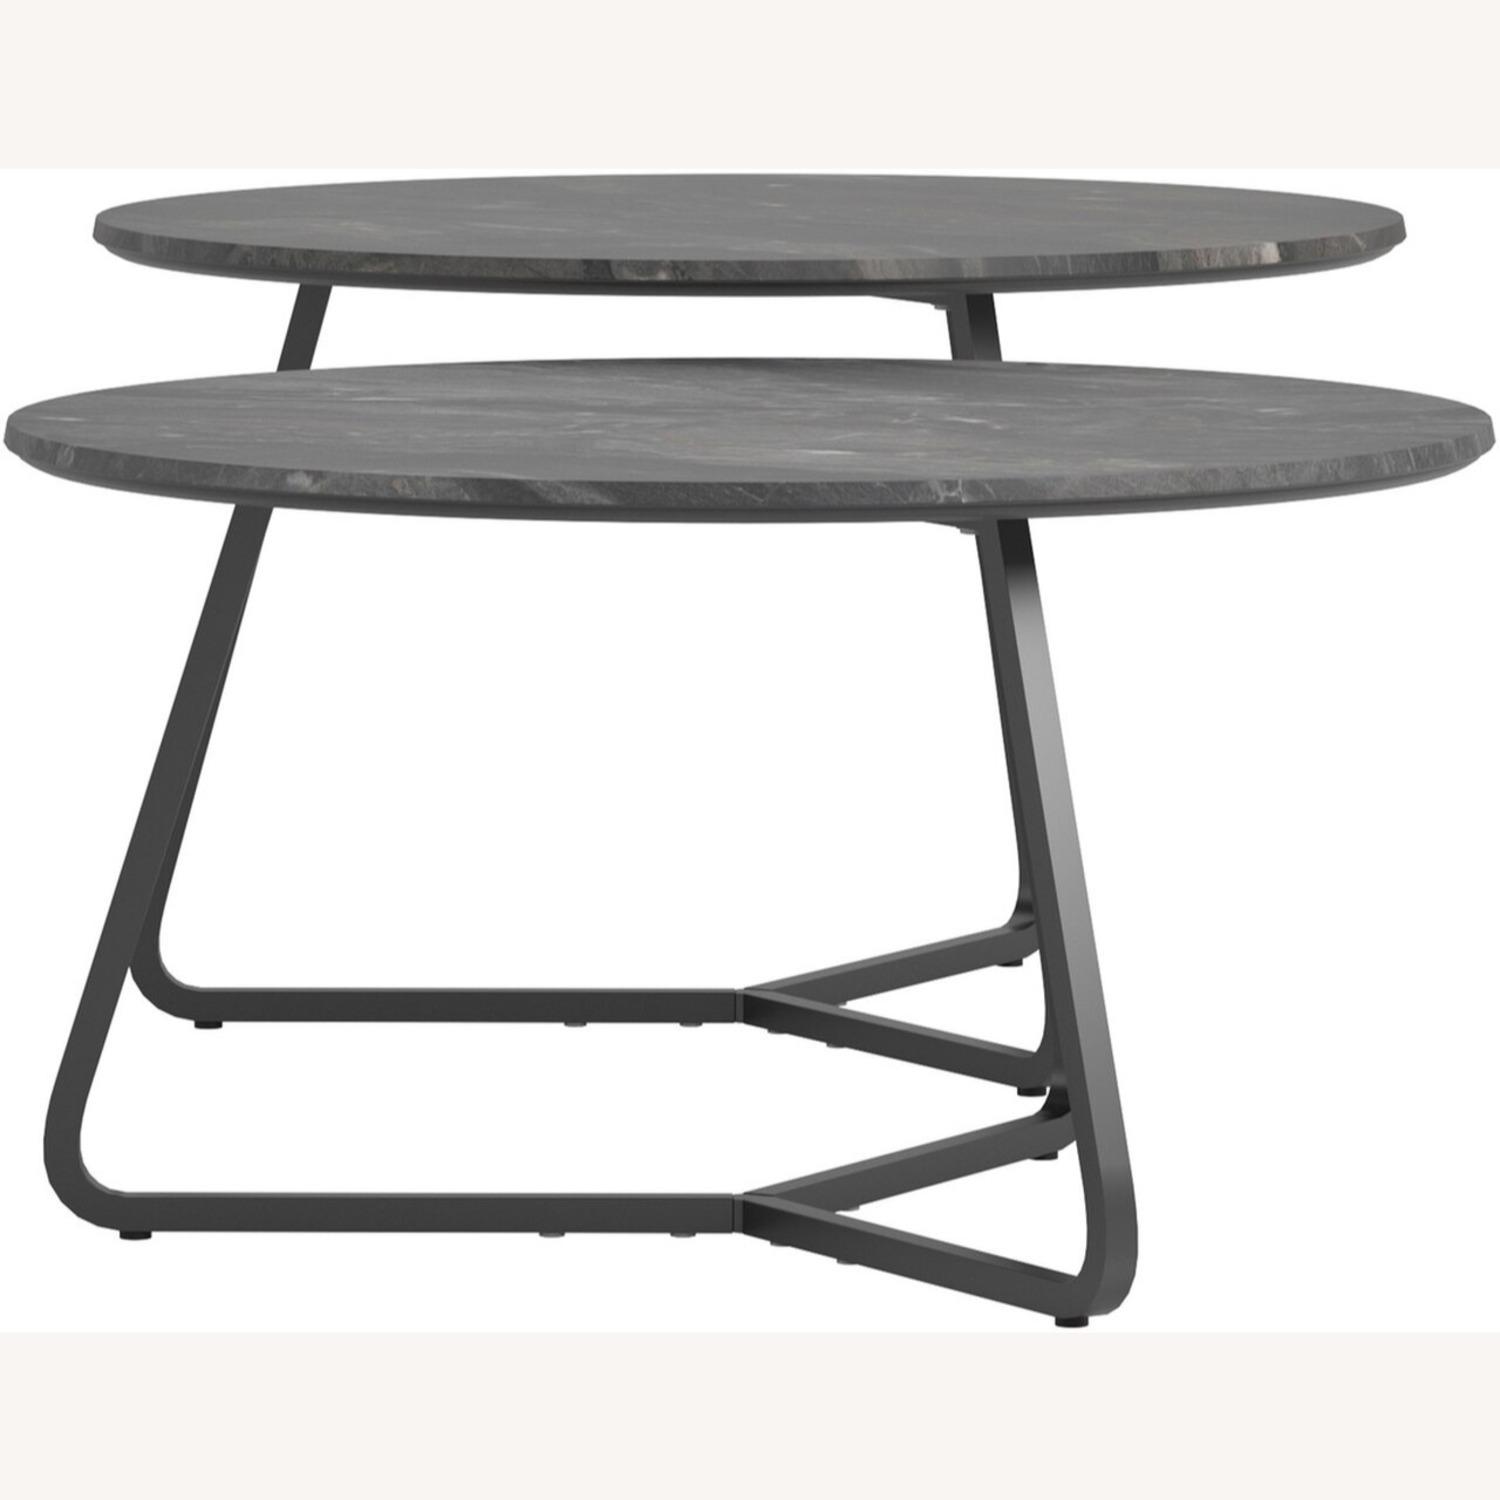 2-Piece Round Coffee Table In Matte Black Finish - image-2